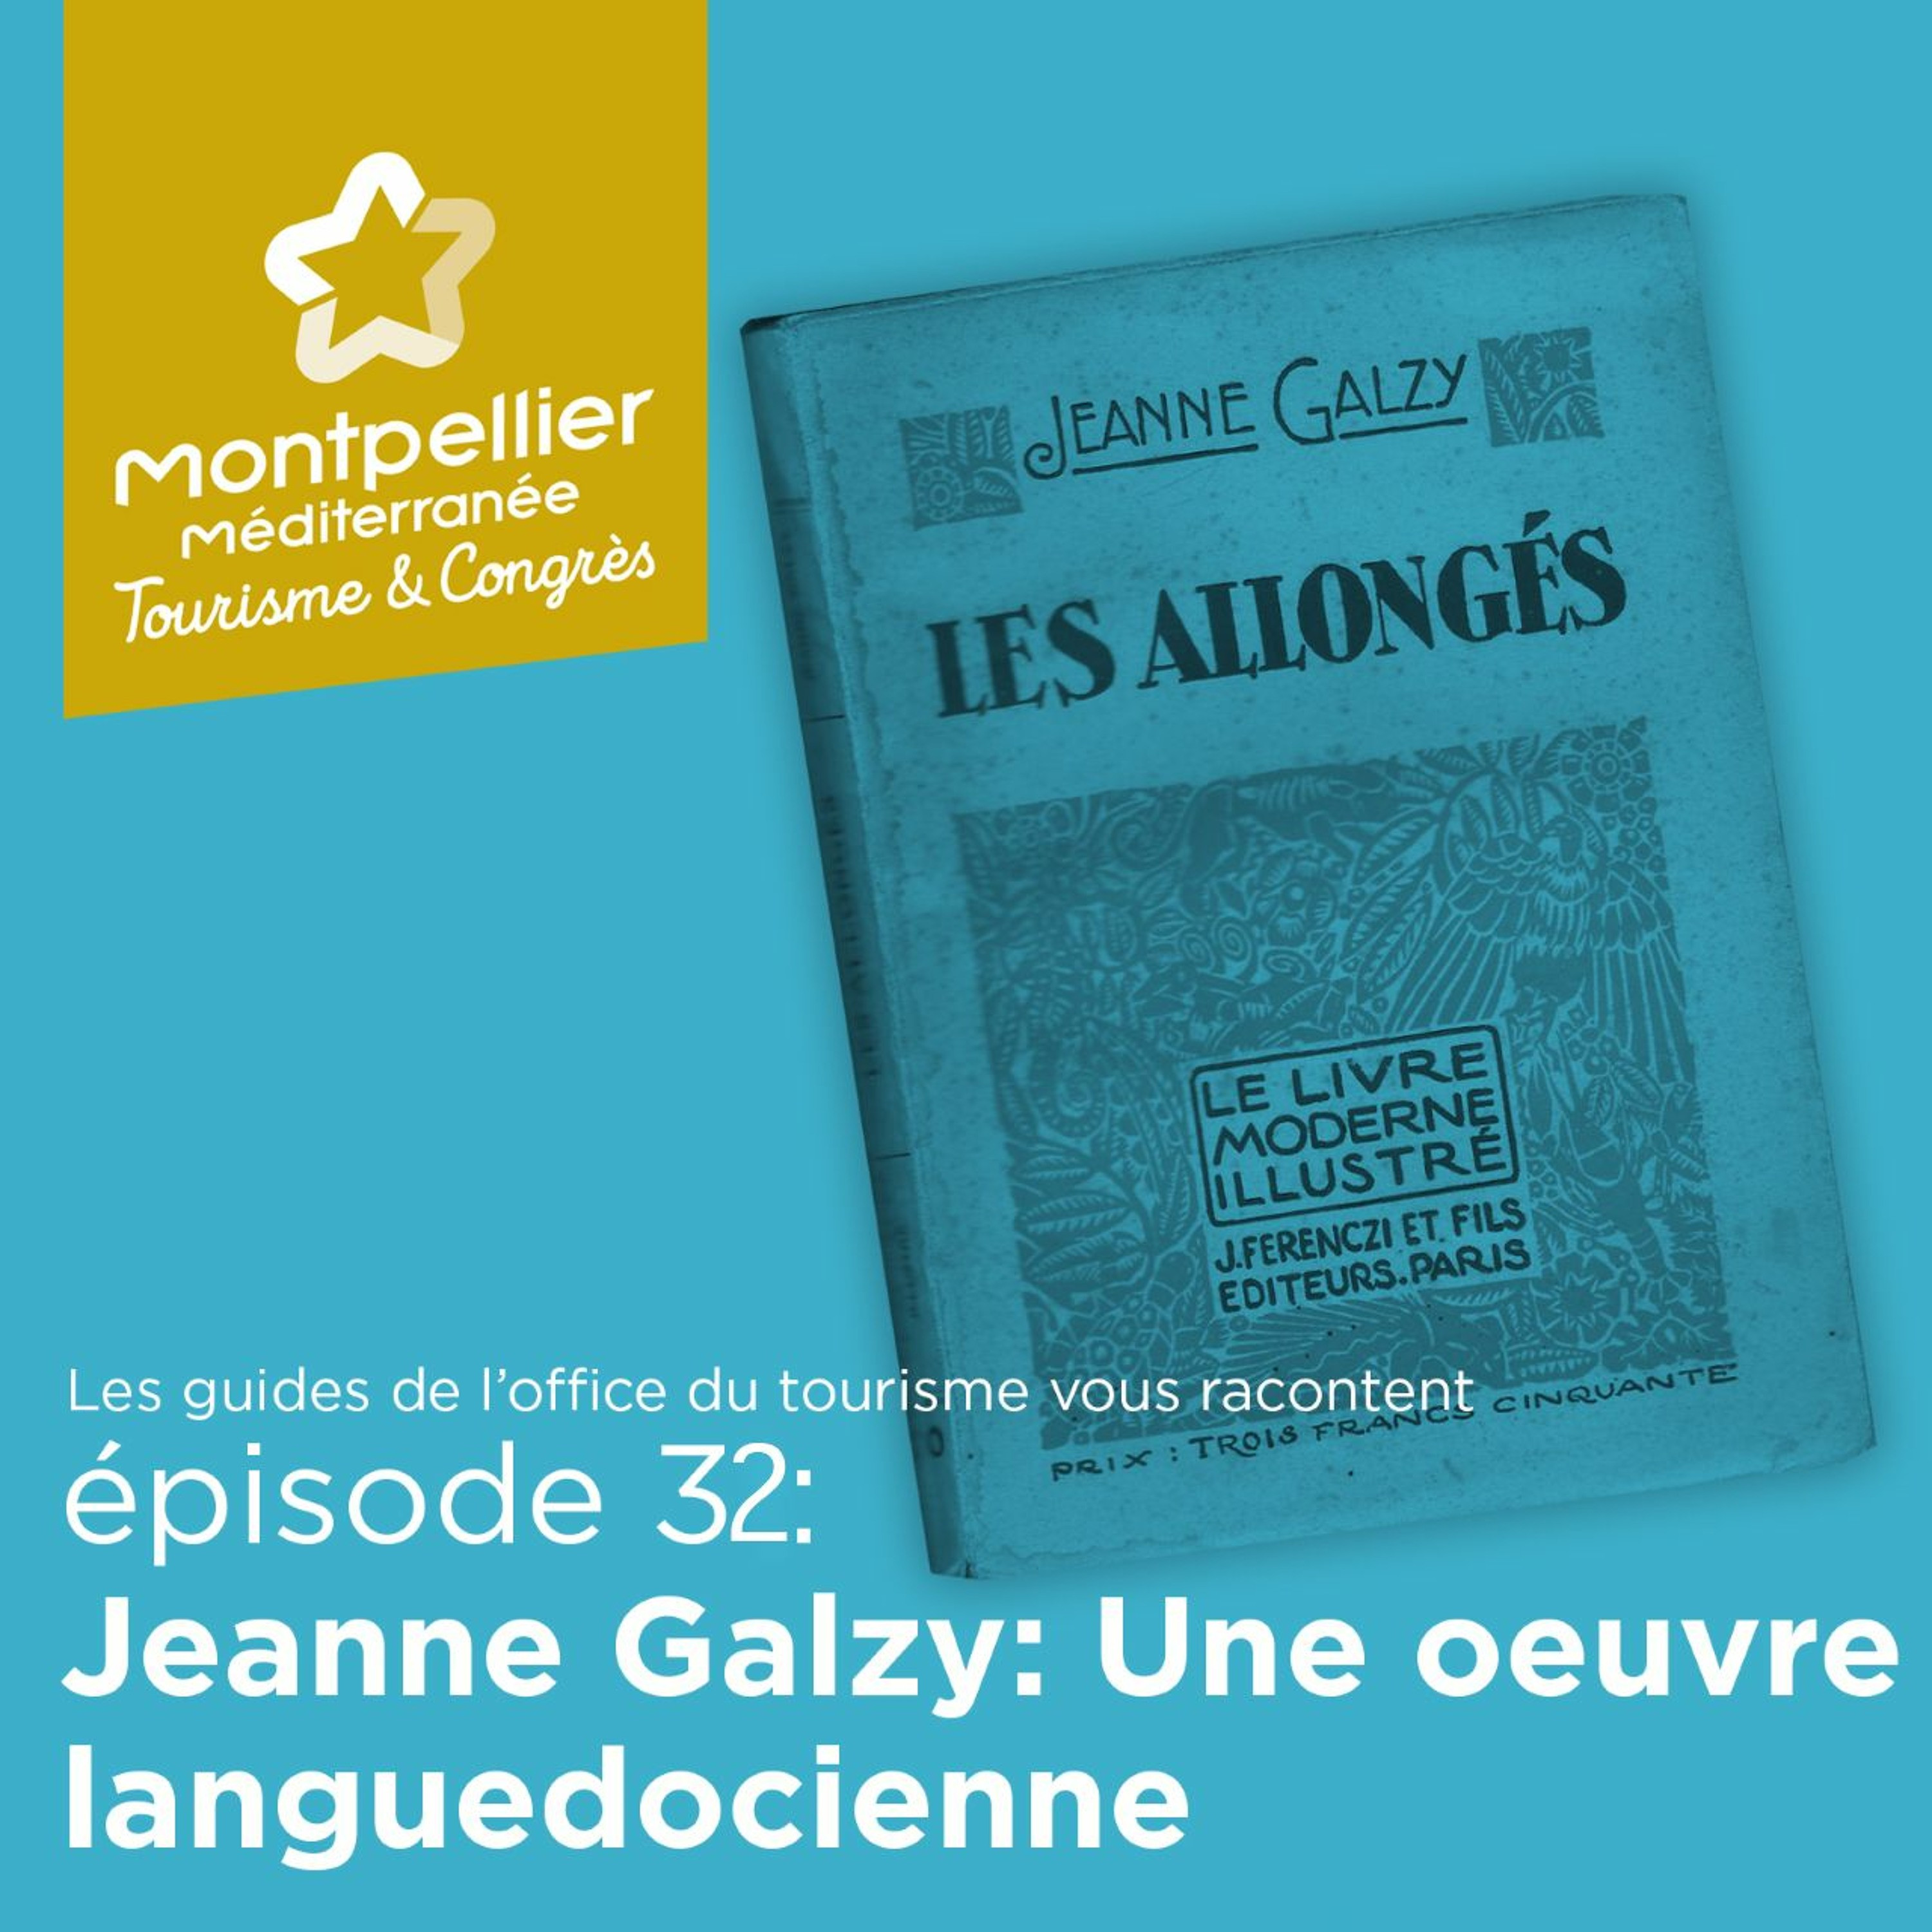 Épisode 32 Jeanne Galzy Une Oeuvre Languedocienne